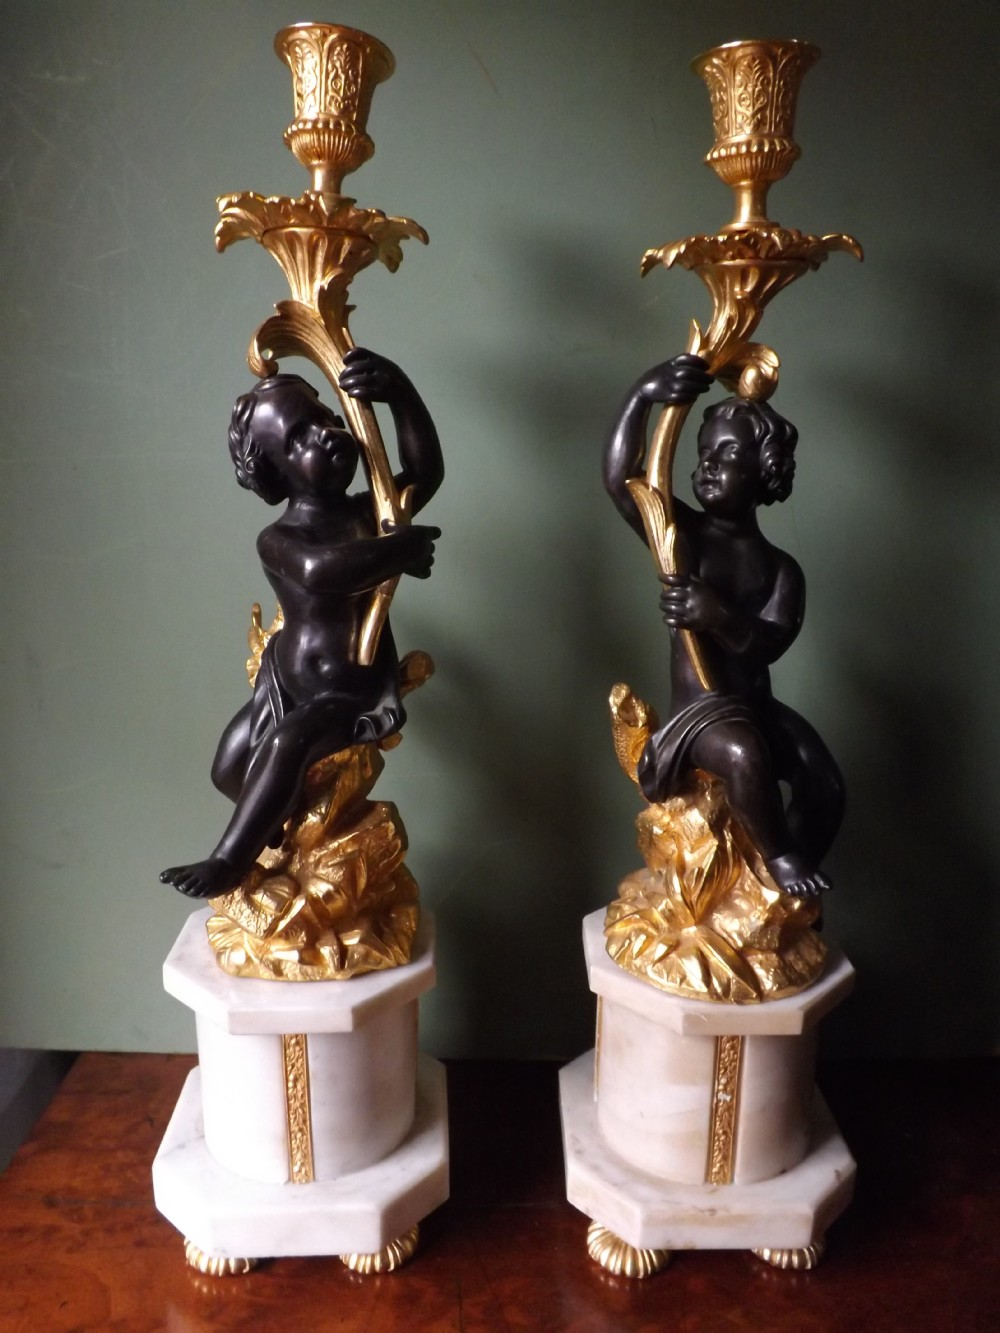 pair of late c19th french bronze and ormolu candlesticks on marble plinth bases